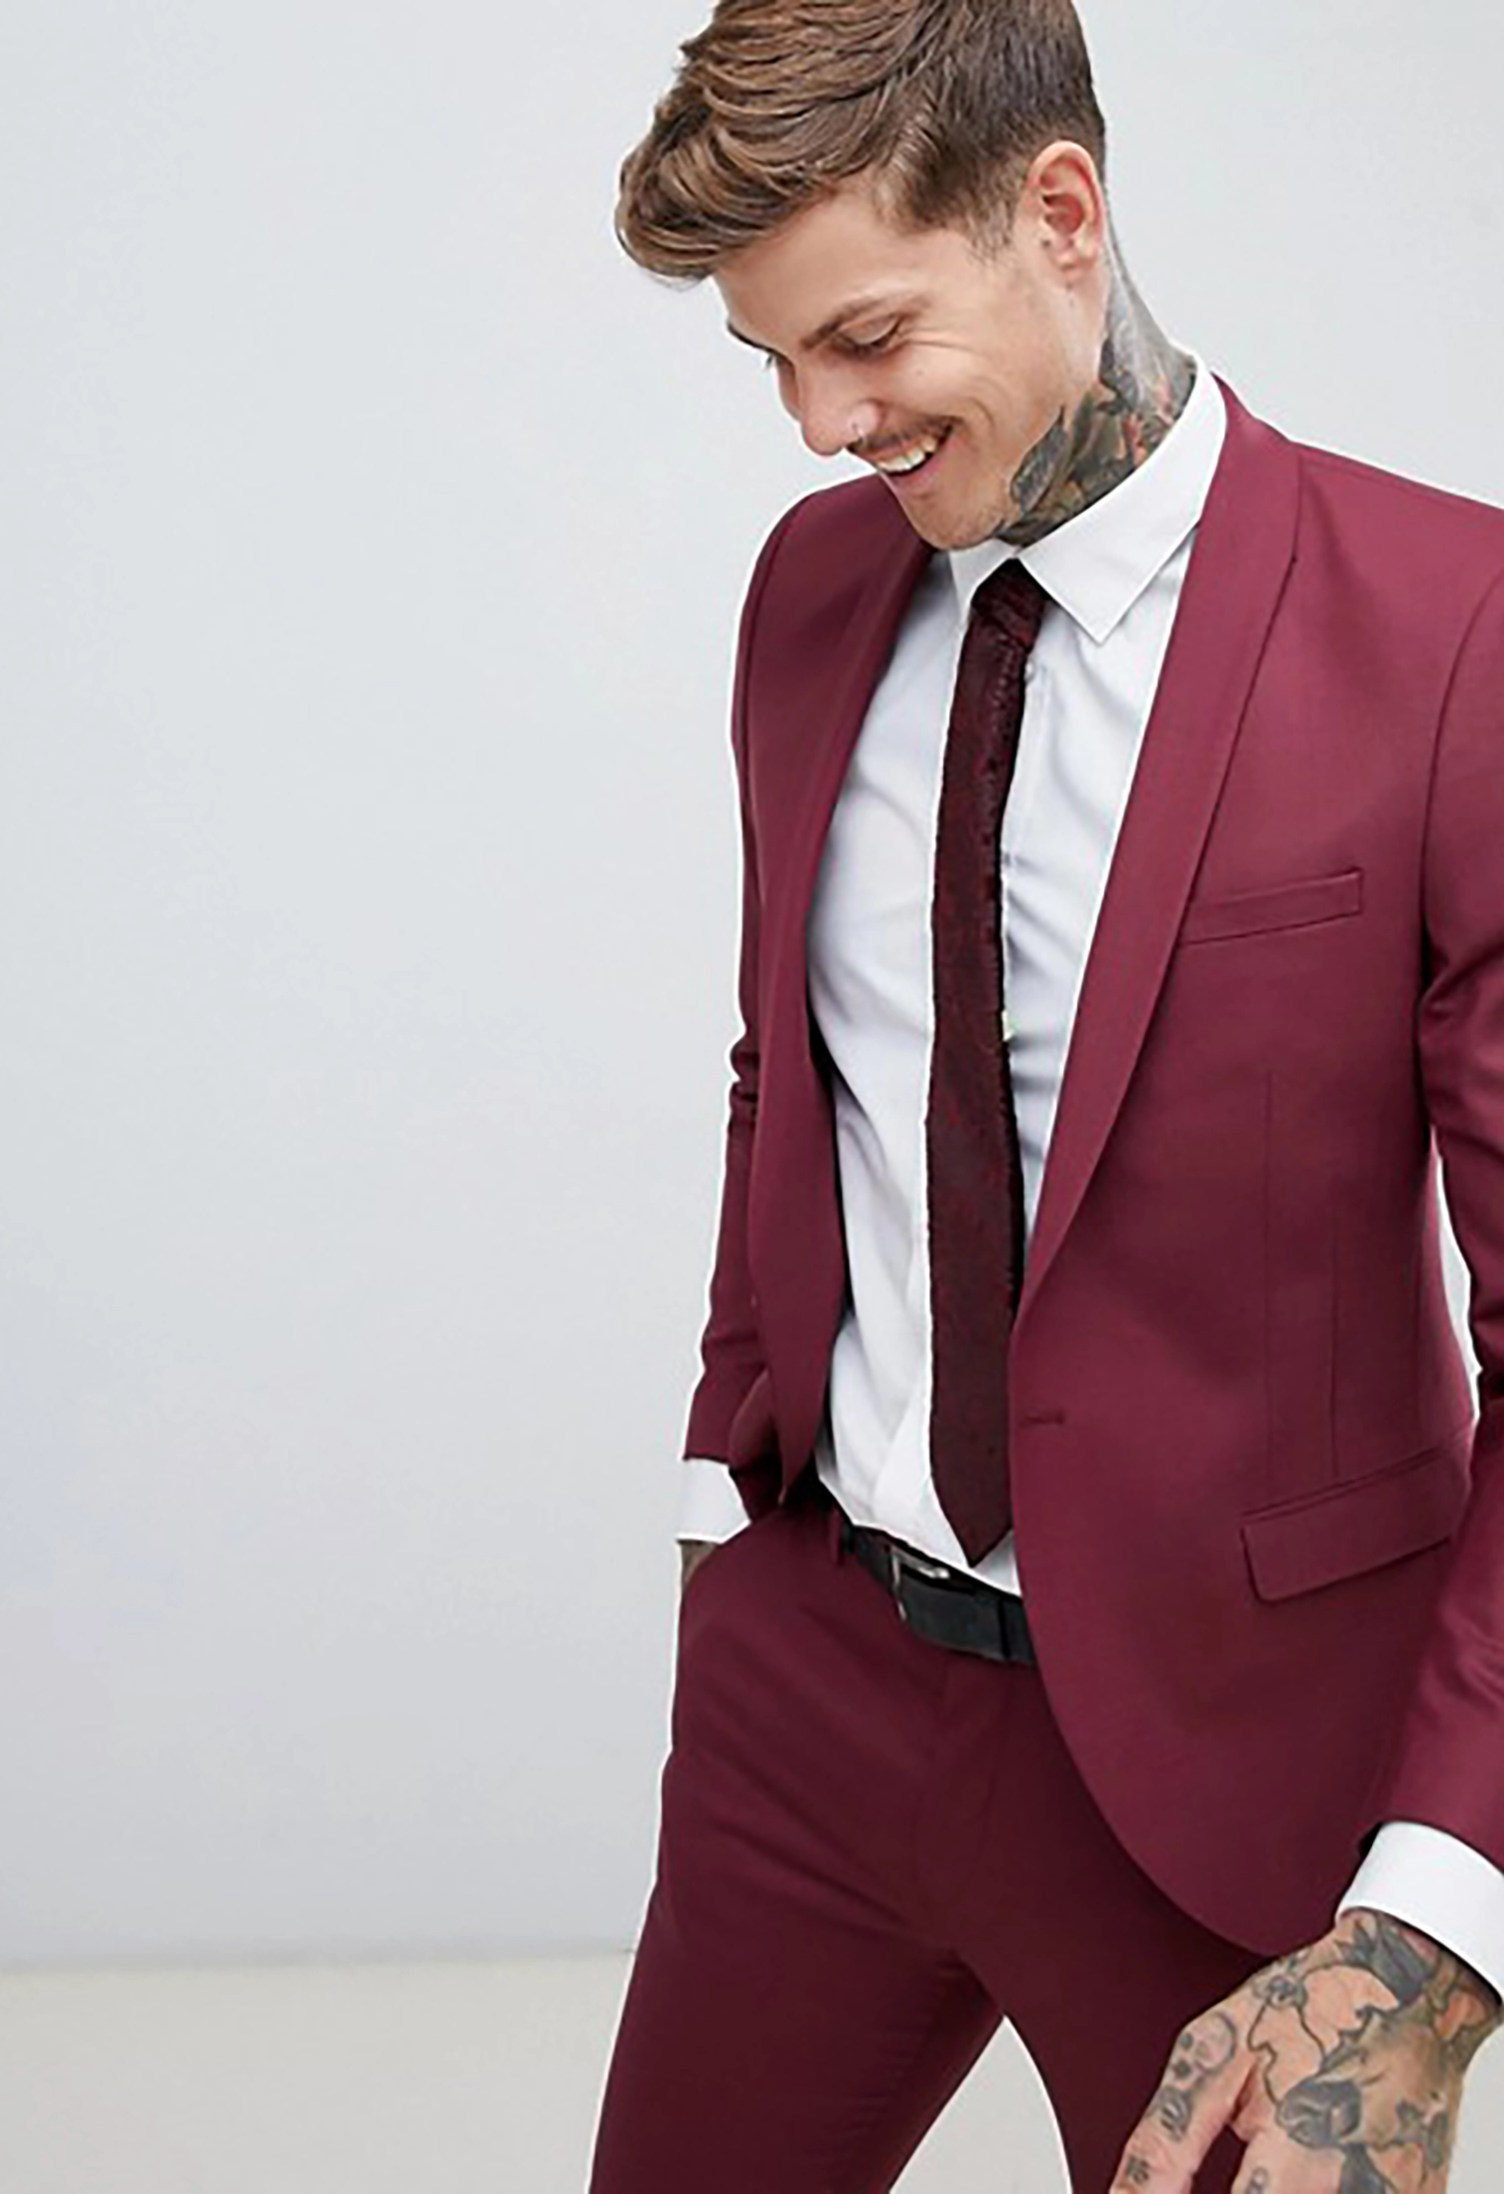 f77ccc6055d7e7 Super Skinny Suit Jacket in Burgundy - Green Wedding Shoes